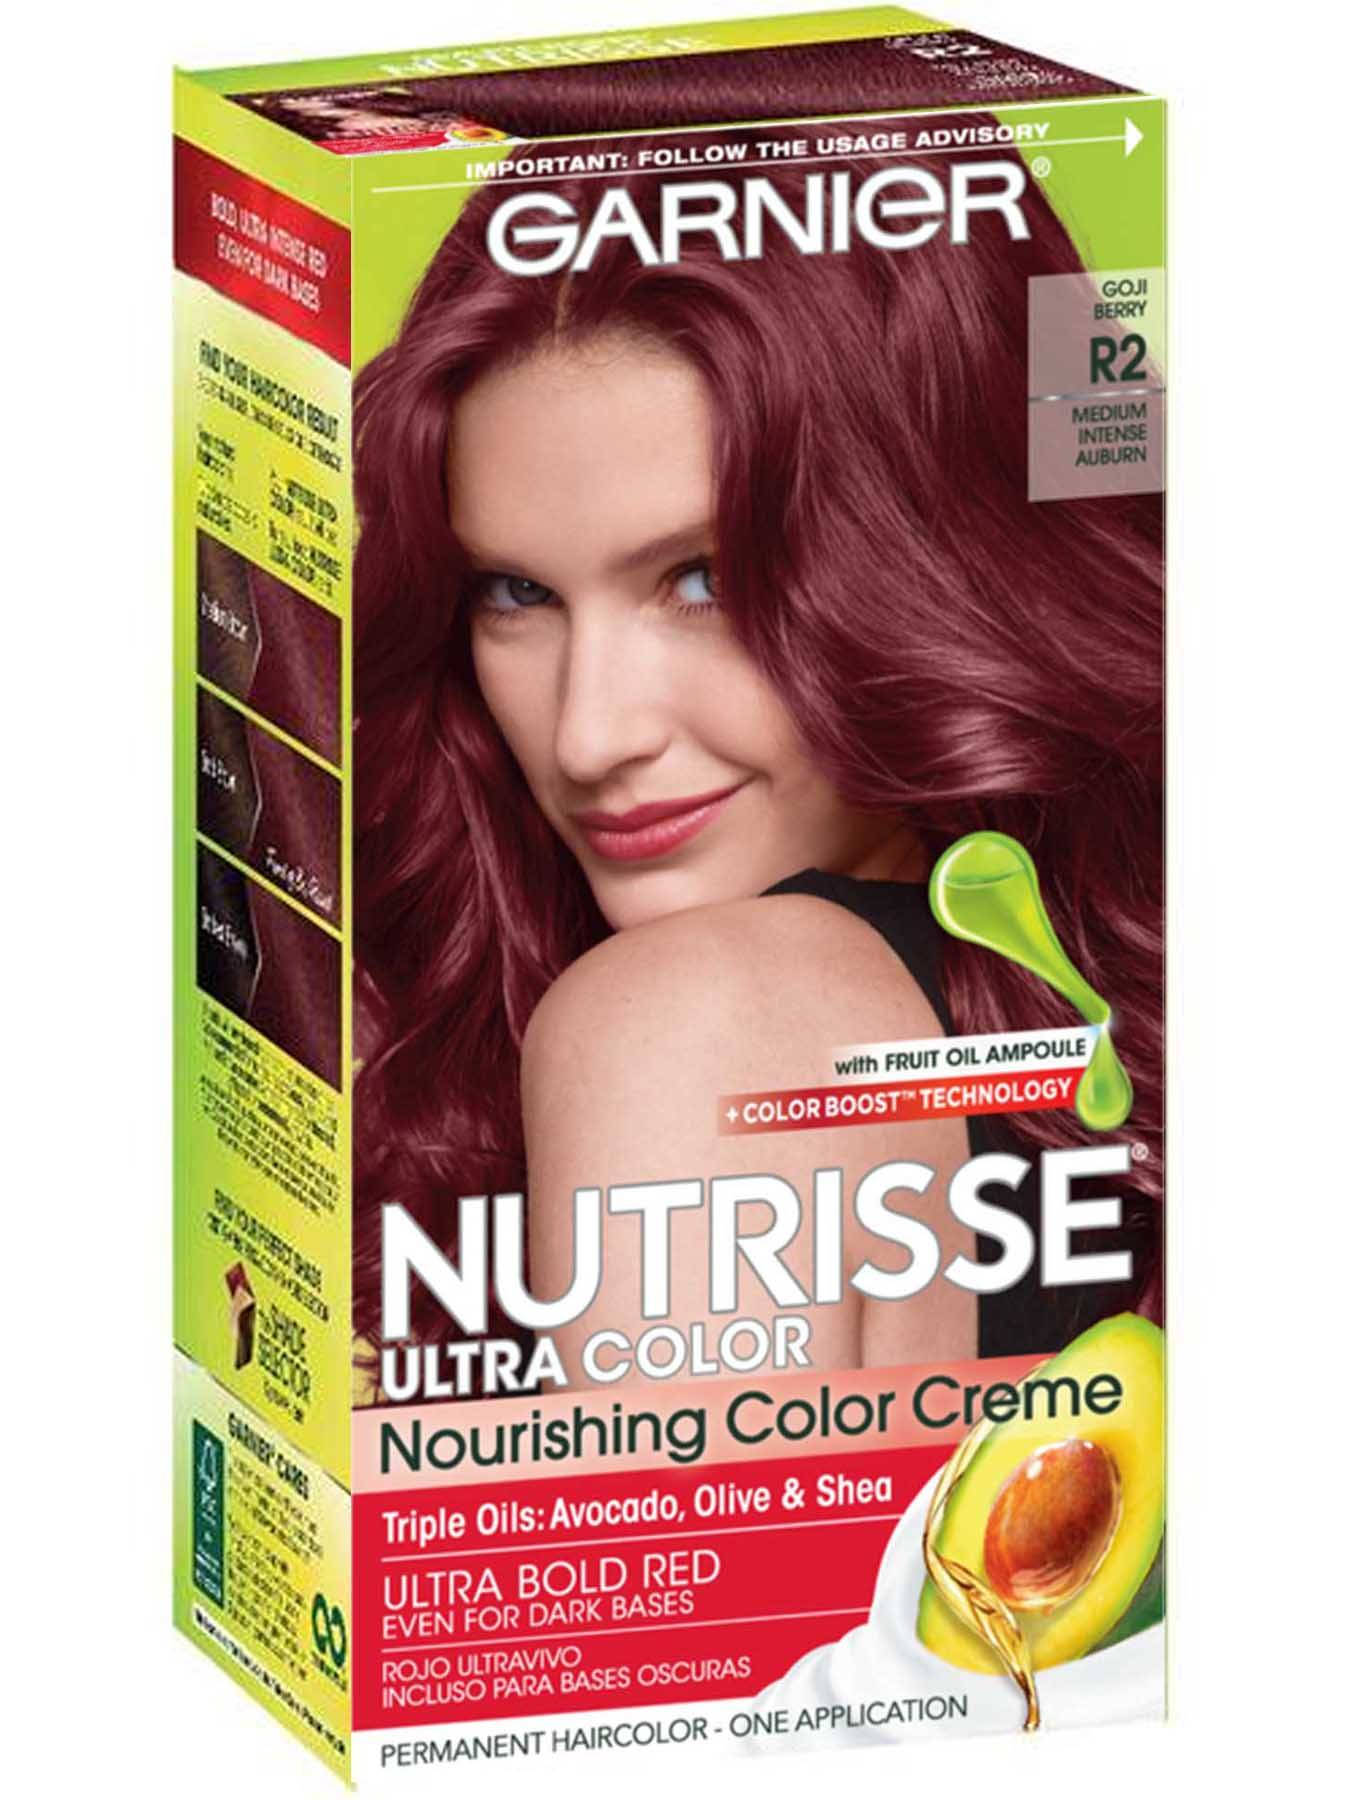 Nutrisse Ultra-Color - Medium Intense Auburn Hair Color - Garnier